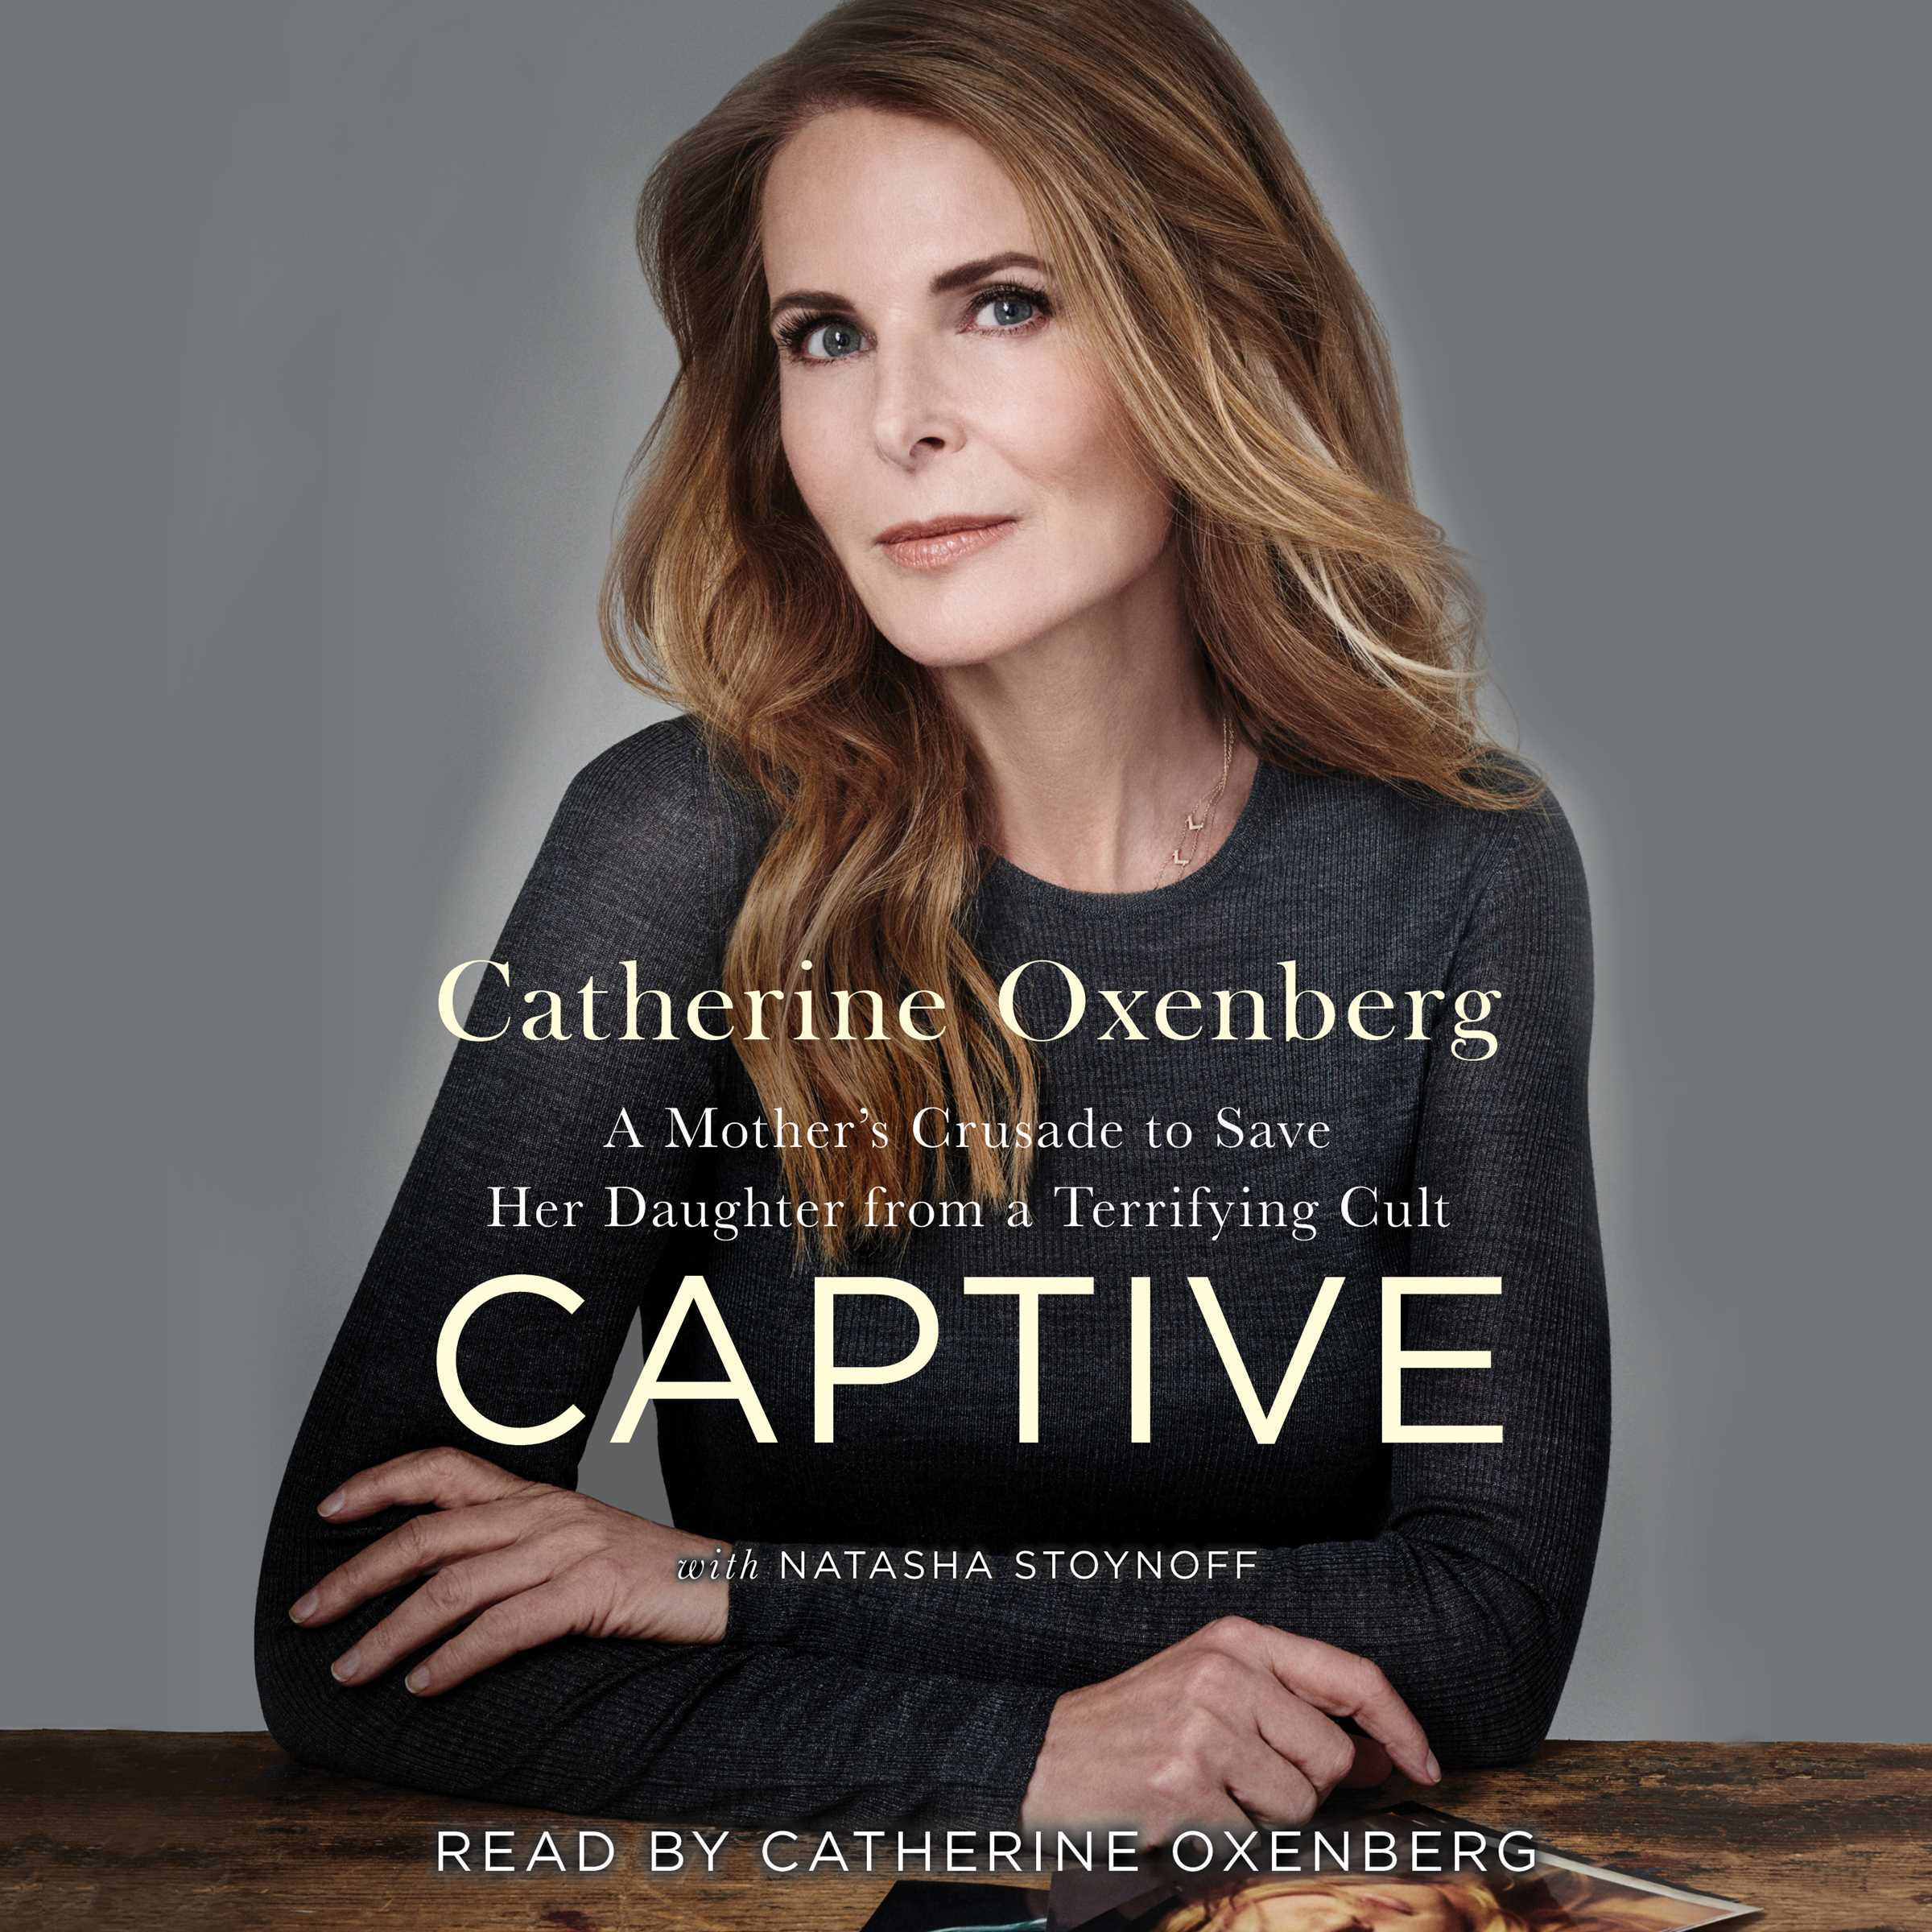 A Mothers Crusade My Special Needs >> Captive A Mother S Crusade To Save Her Daughter From The Terrifying